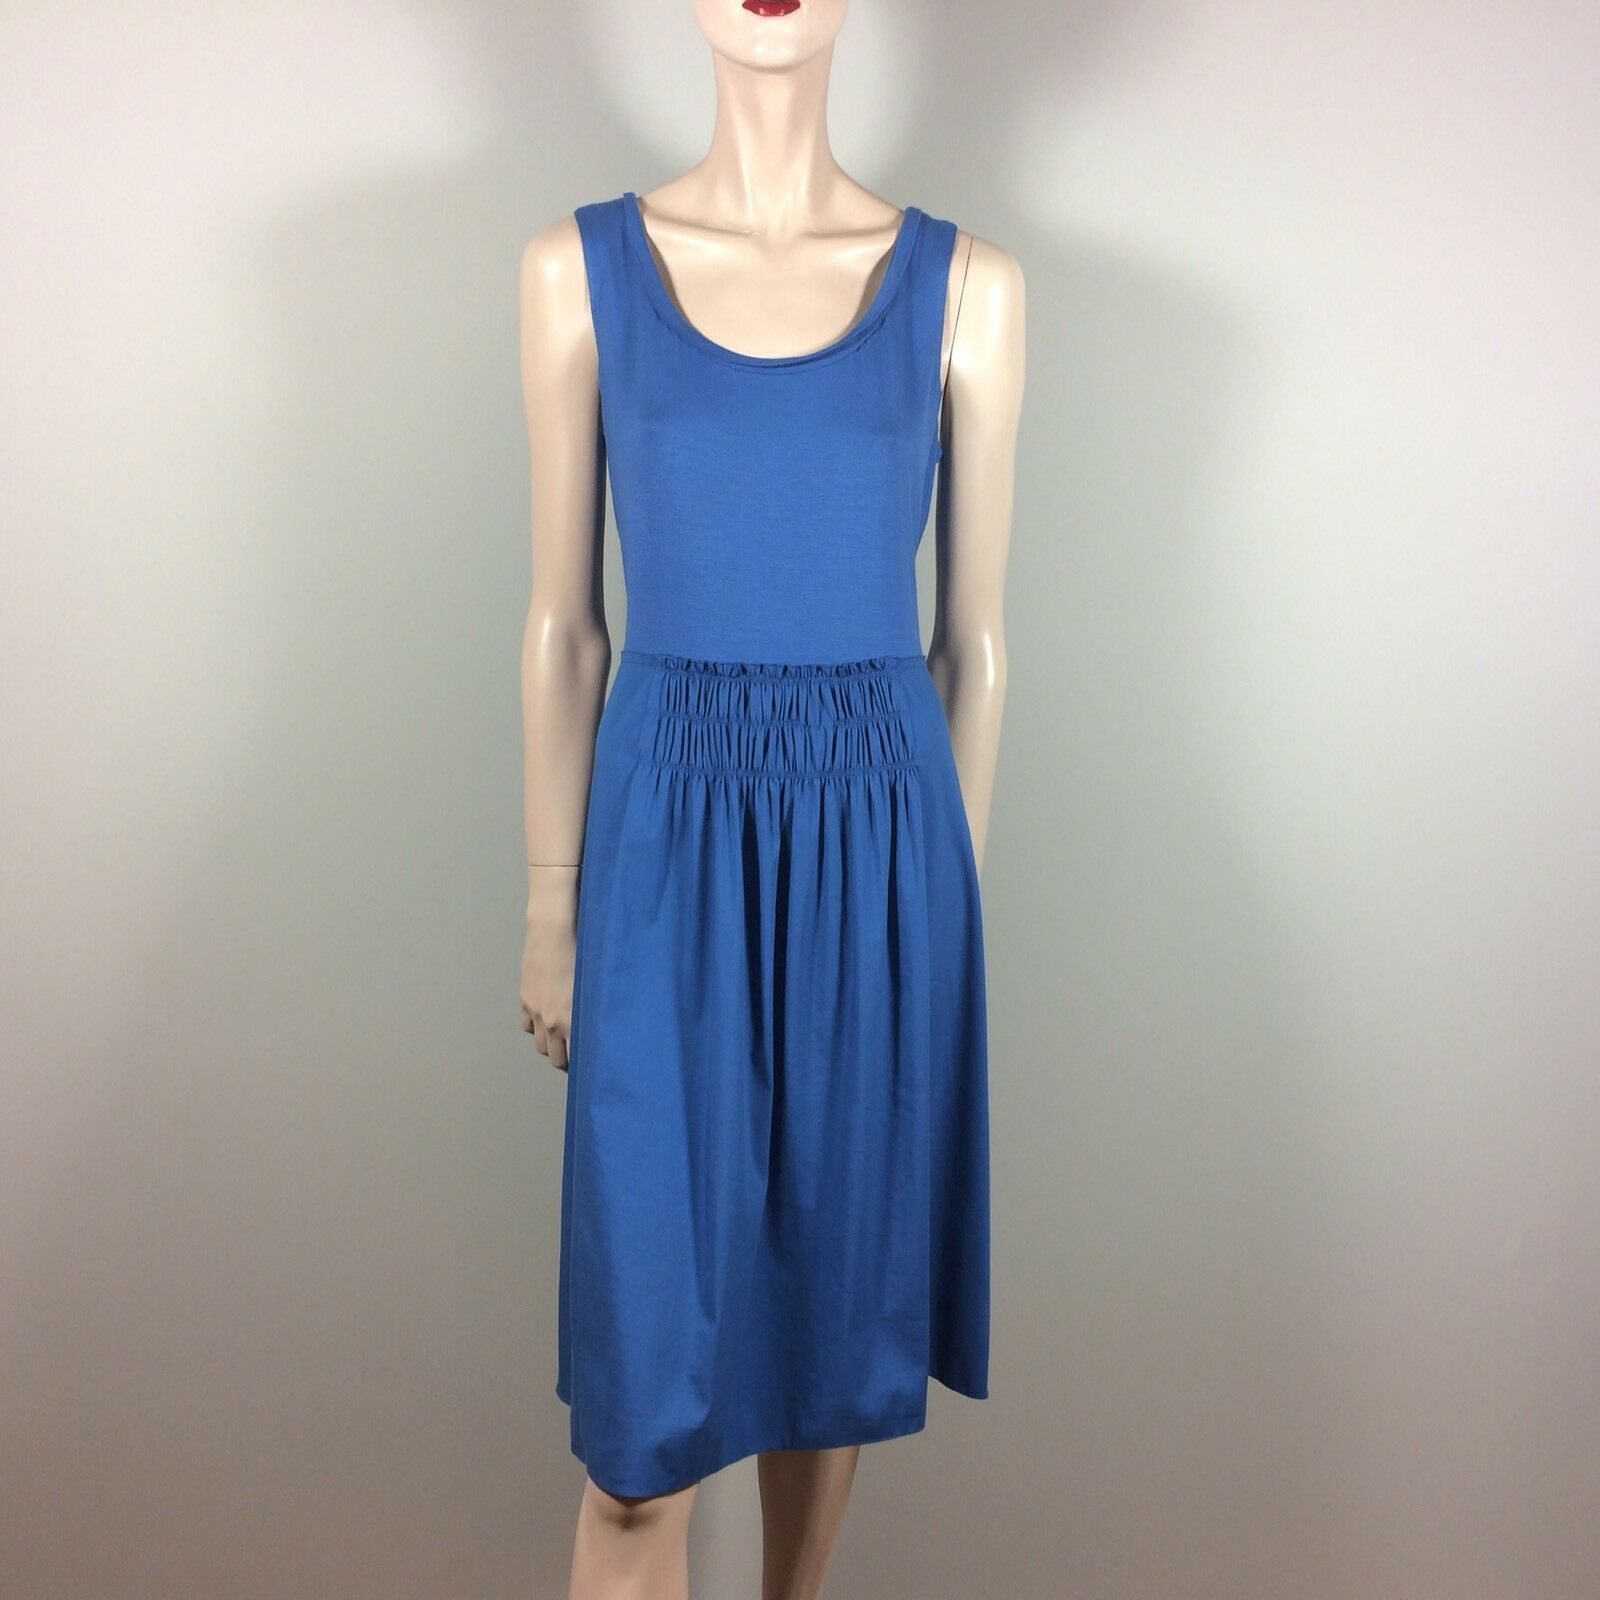 TAHARI Damen Kleid L XL 40 42 Blau Jersey Baumwolle Casual Resort Summer Dress